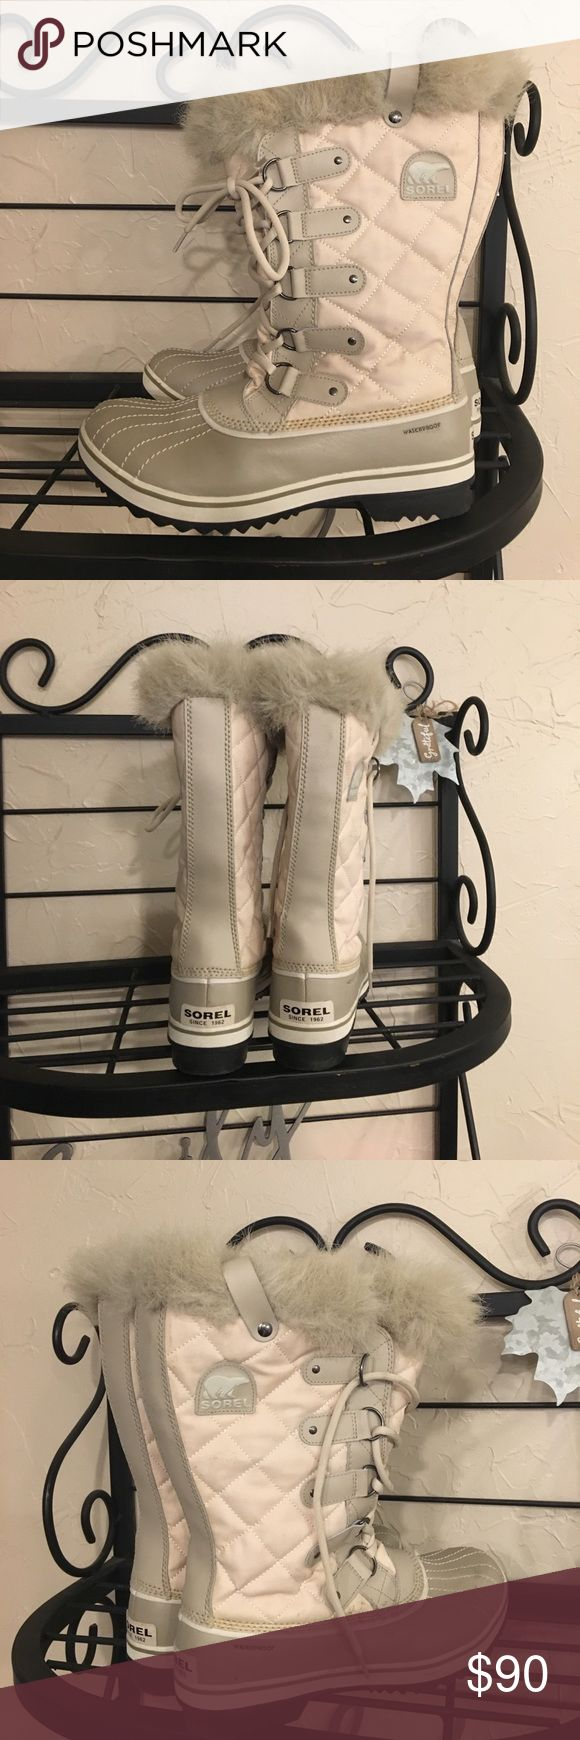 Sorel Women's Winter Boots Size 11 Like New. Worn only a few times. Just don't get enough winter weather. Size 11 Sorel Shoes Winter & Rain Boots